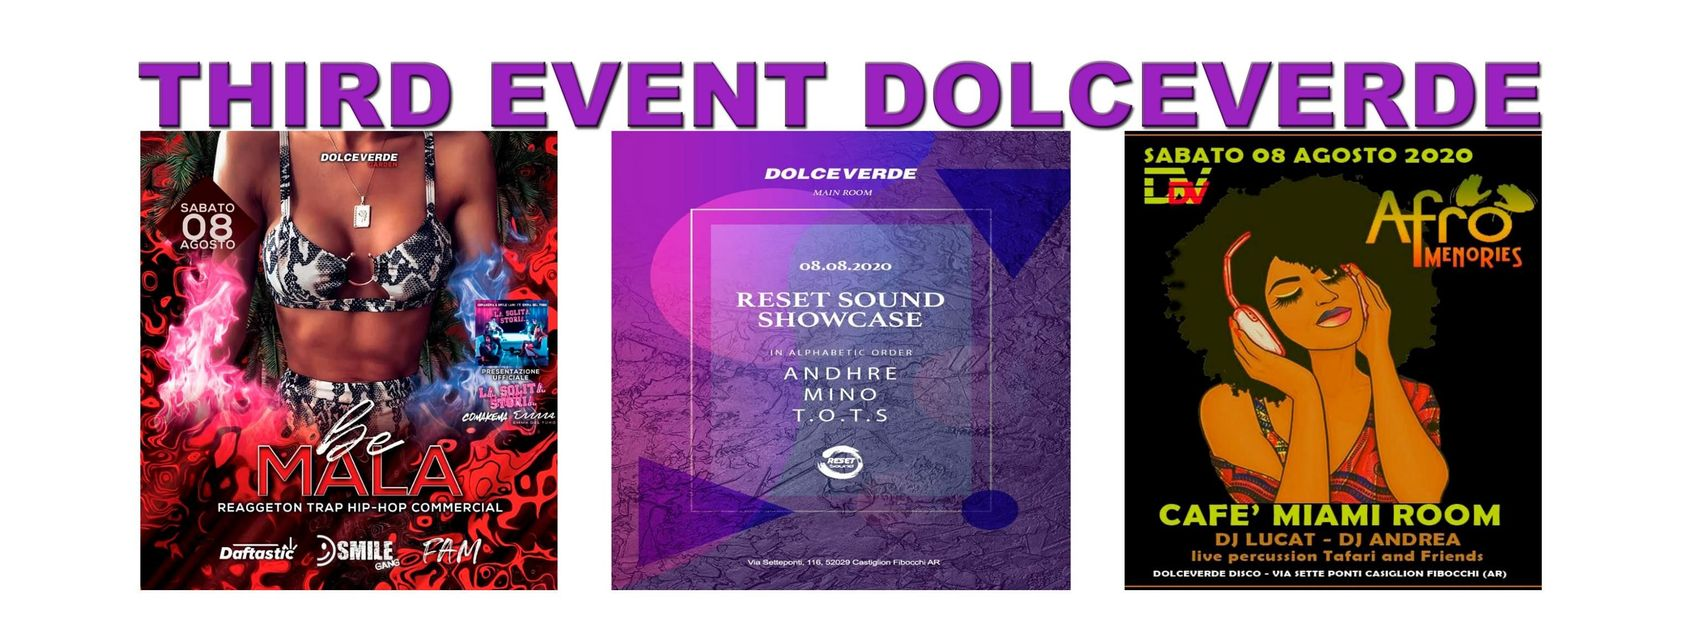 DOLCEVERDE Third Event